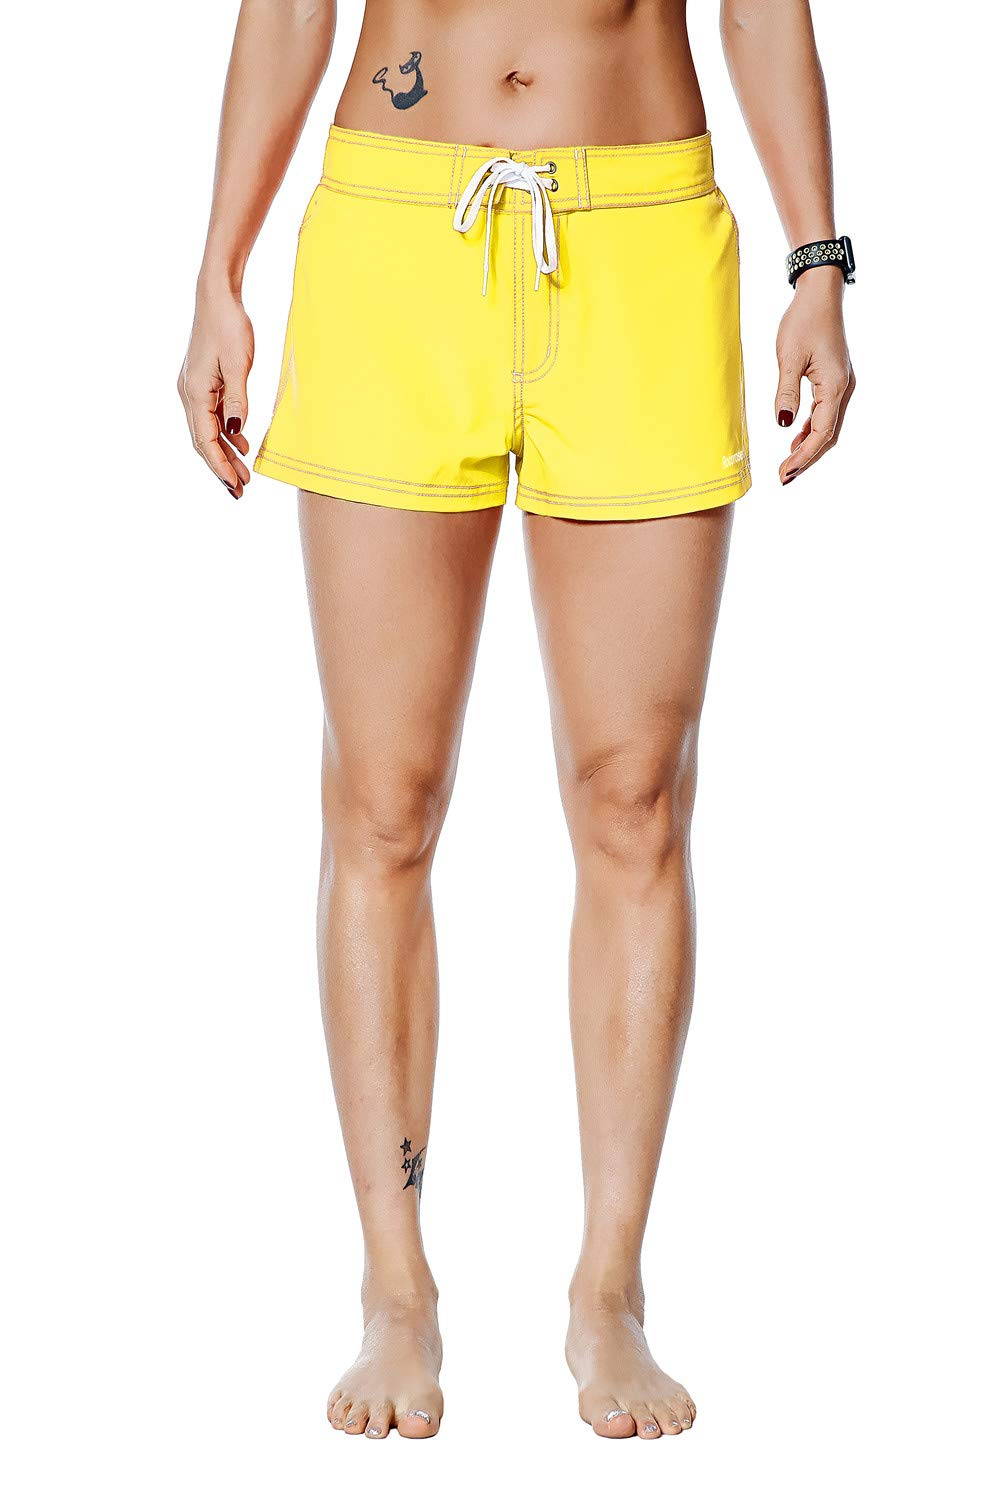 Rocorose Women's Boardshorts Water Sports Quick Dry with Back Pocket